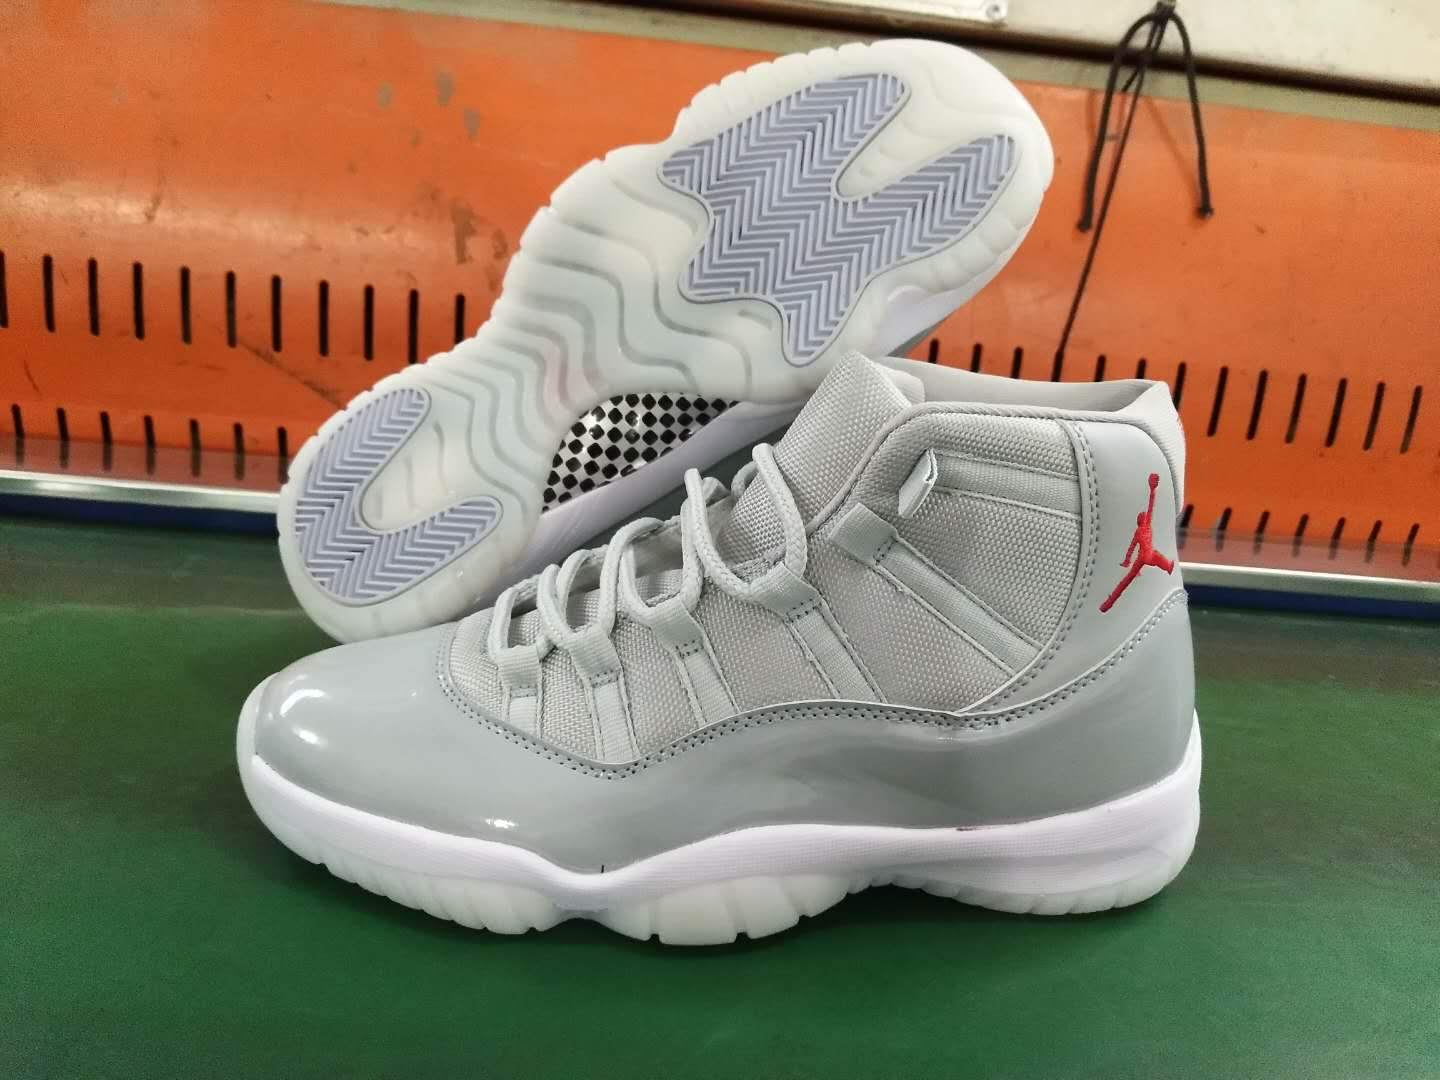 New Air Jordan 11 Grey White Red Shoes